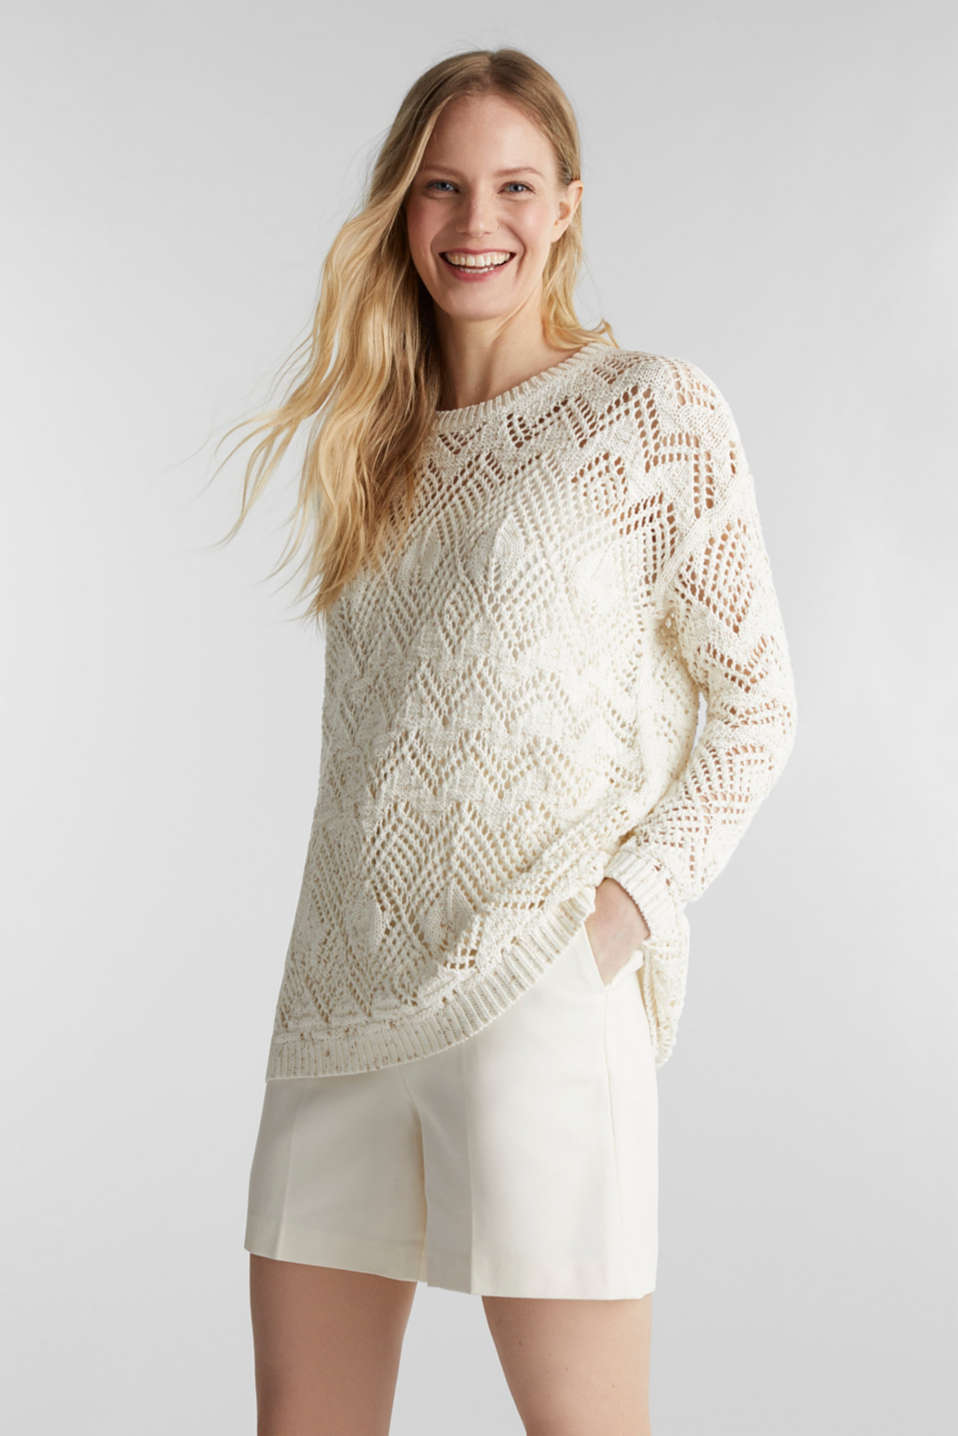 Esprit - Openwork jumper made of 100% cotton